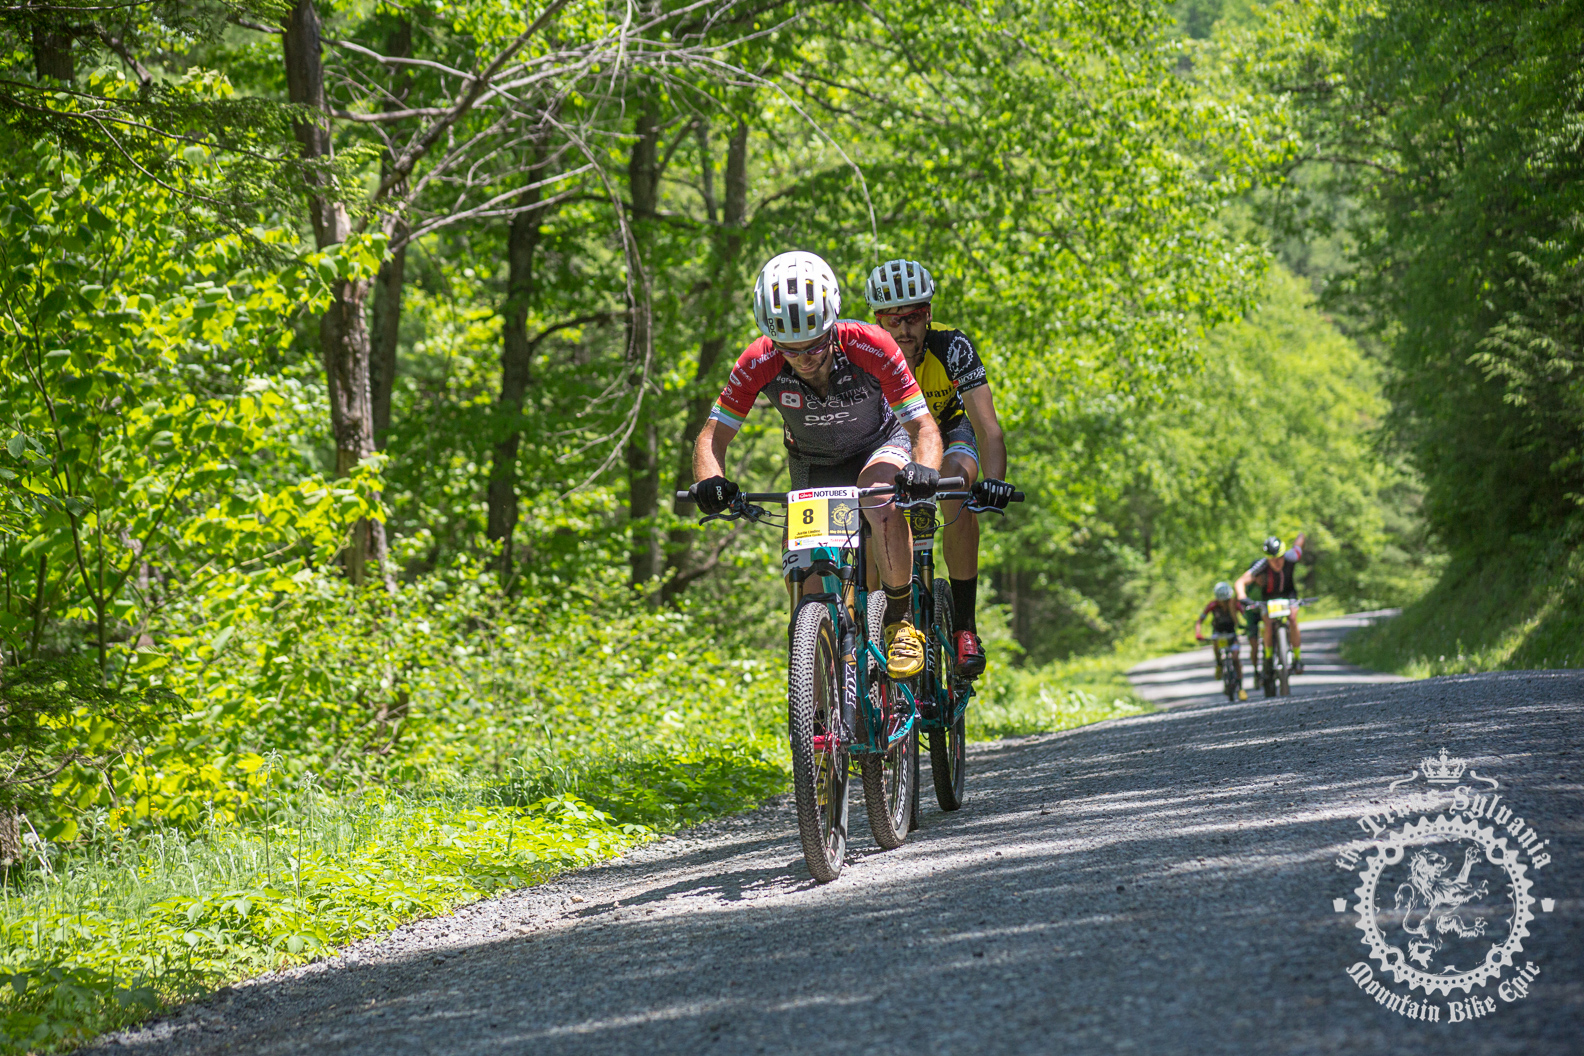 Justin Lindine (Competitive Cyclist) and Payson McElveen (Competitive Cyclist) make a break on a gravel road climb.